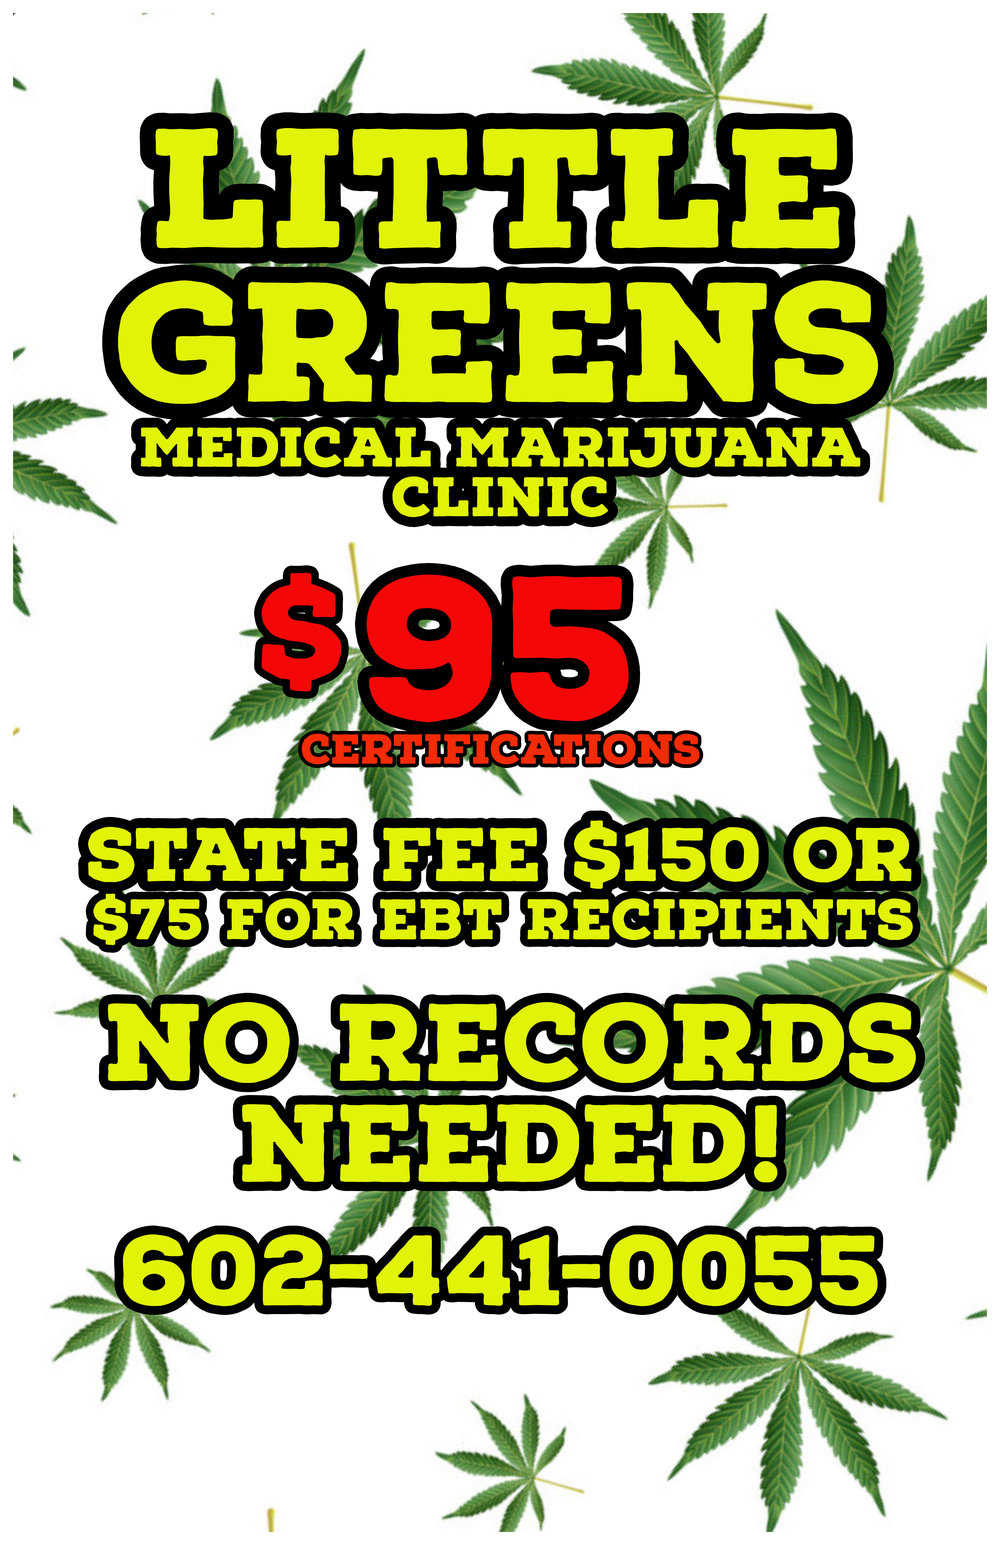 WE OFFER THE LOWEST PRICE FOR MEDICAL MARIJUANA CARDS IN ARIZONA.